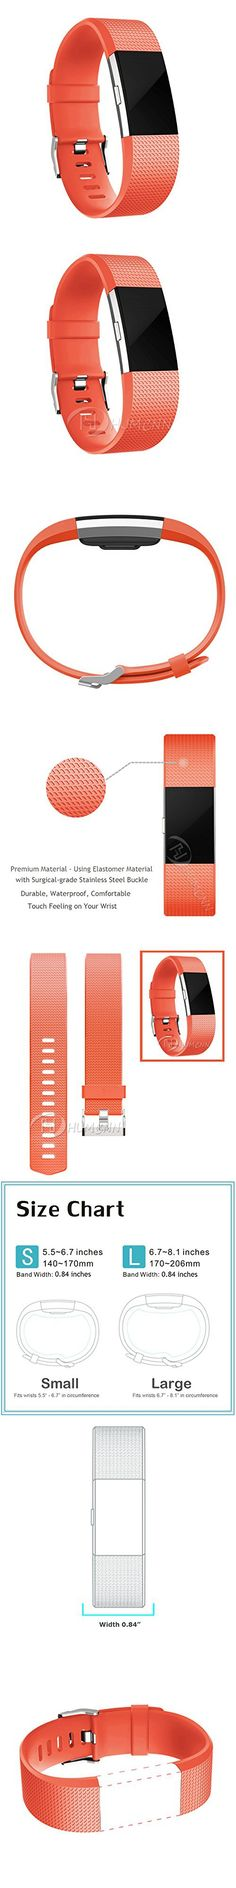 Small Bands for Fitbit Charge 2 Heart Rate, Tangerine Orange Replacement Wrist Band